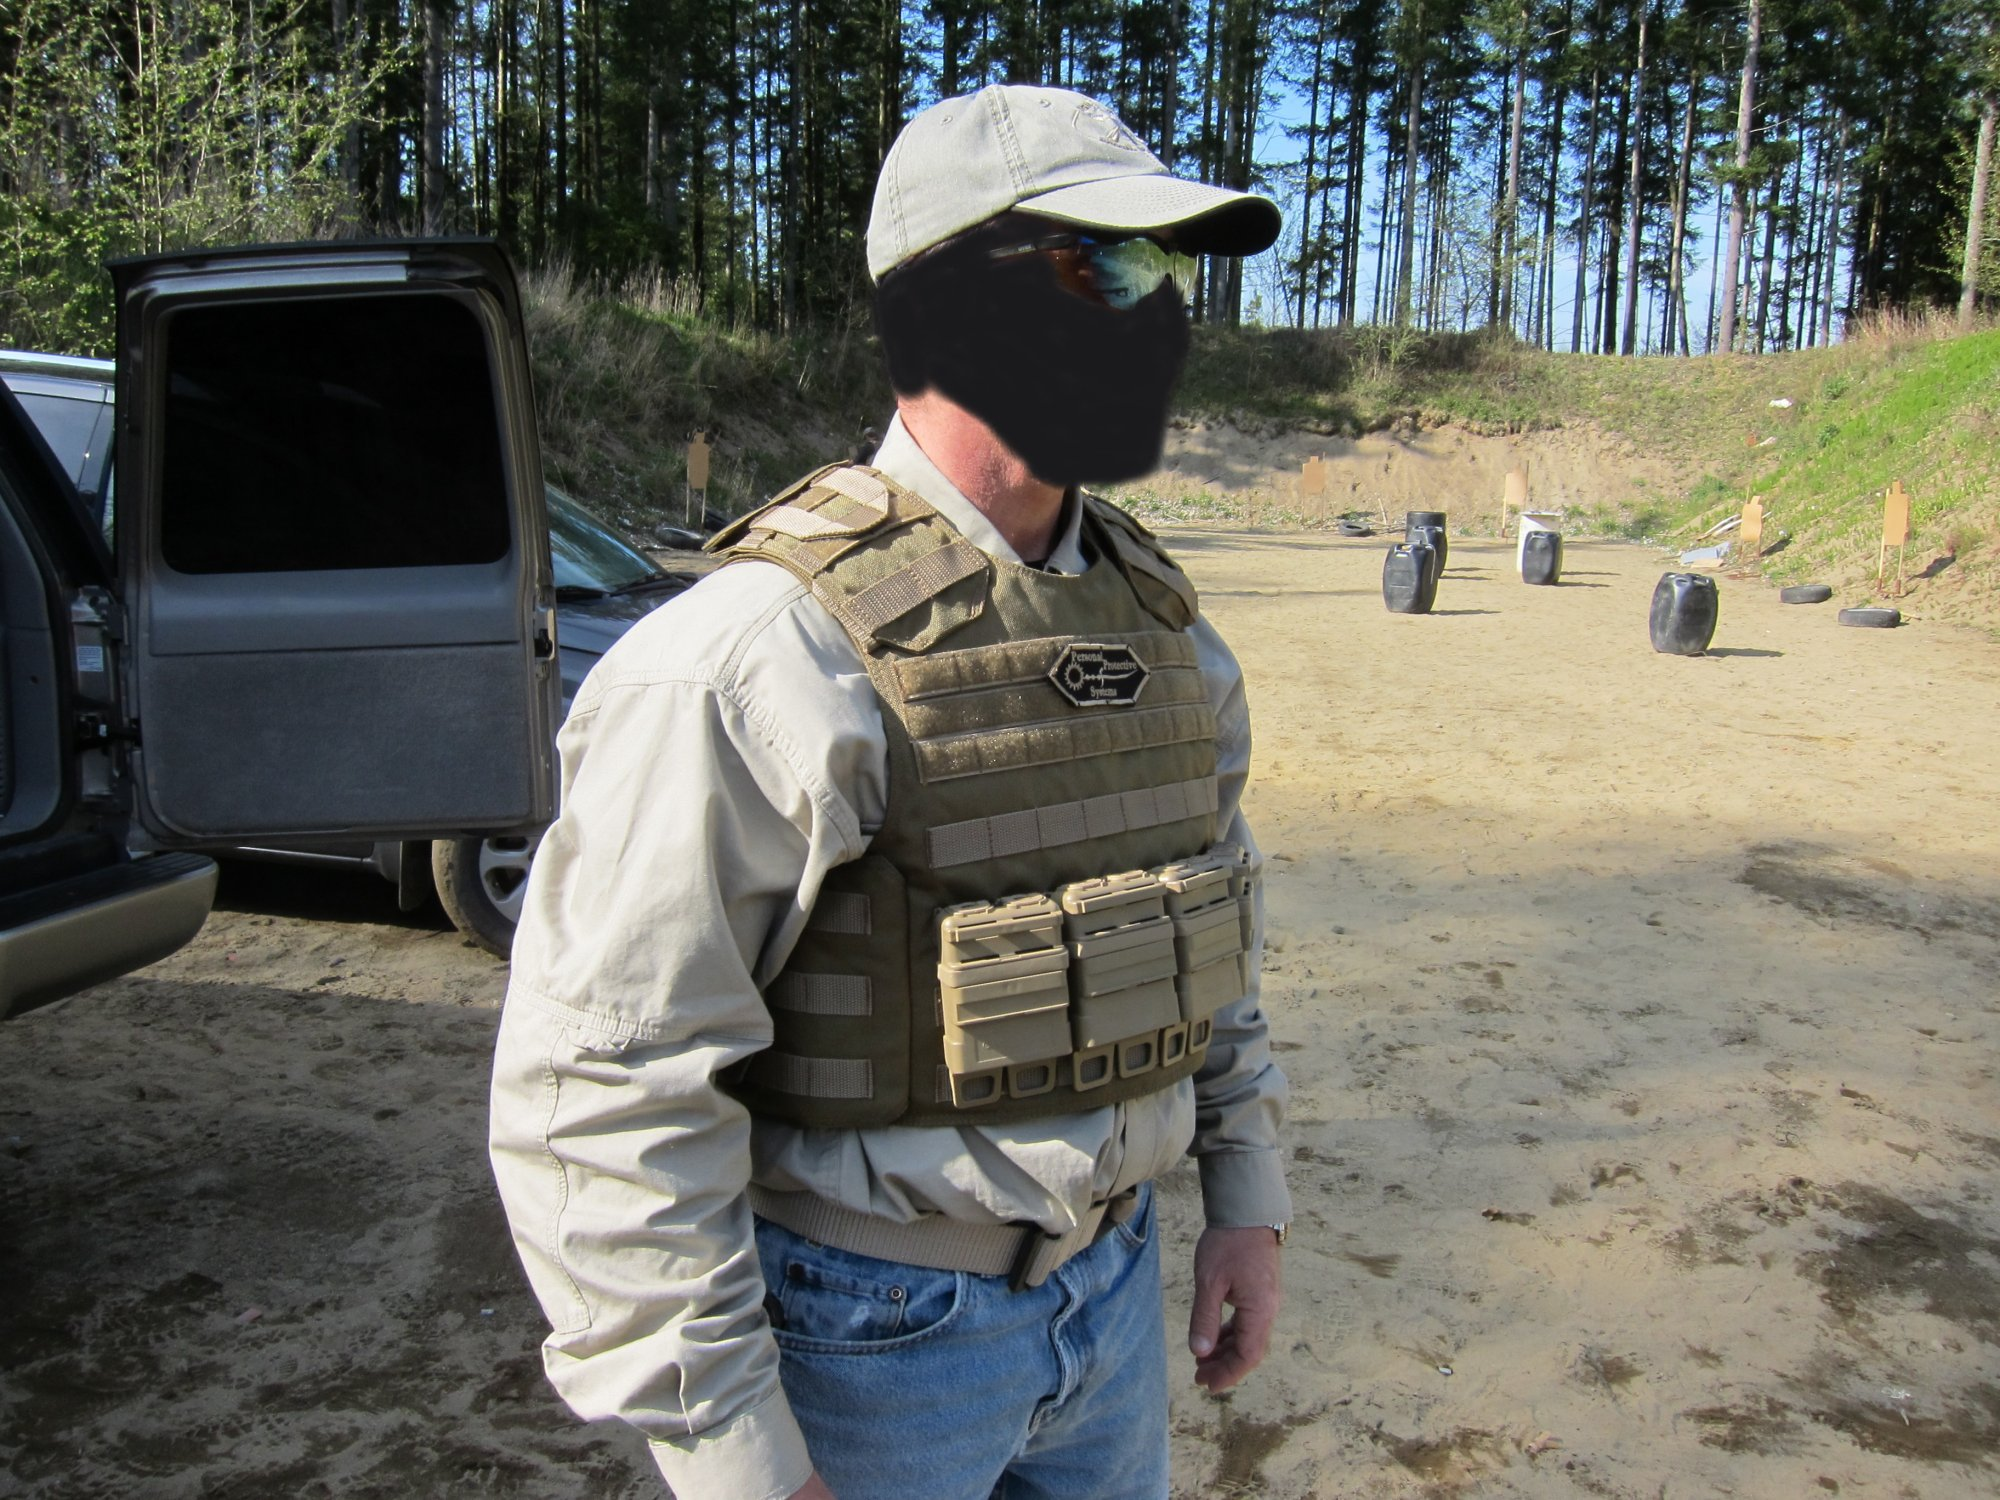 P2 Systems Cohort I Tactical Armor Carrier RTT 5 <!  :en  >Hardpoint Equipment (formerly Personal Protective Systems, or P2 Systems) Centurion Armor Maniple I and Cohort I Tactical Body Armor Carrier Systems:  Advanced Hard Armor Plate Carrier/Tactical Vest Systems for Military Special Operations (SPECOPS), LE SWAT, and PSD Ops  (Photos & Video)<!  :  >